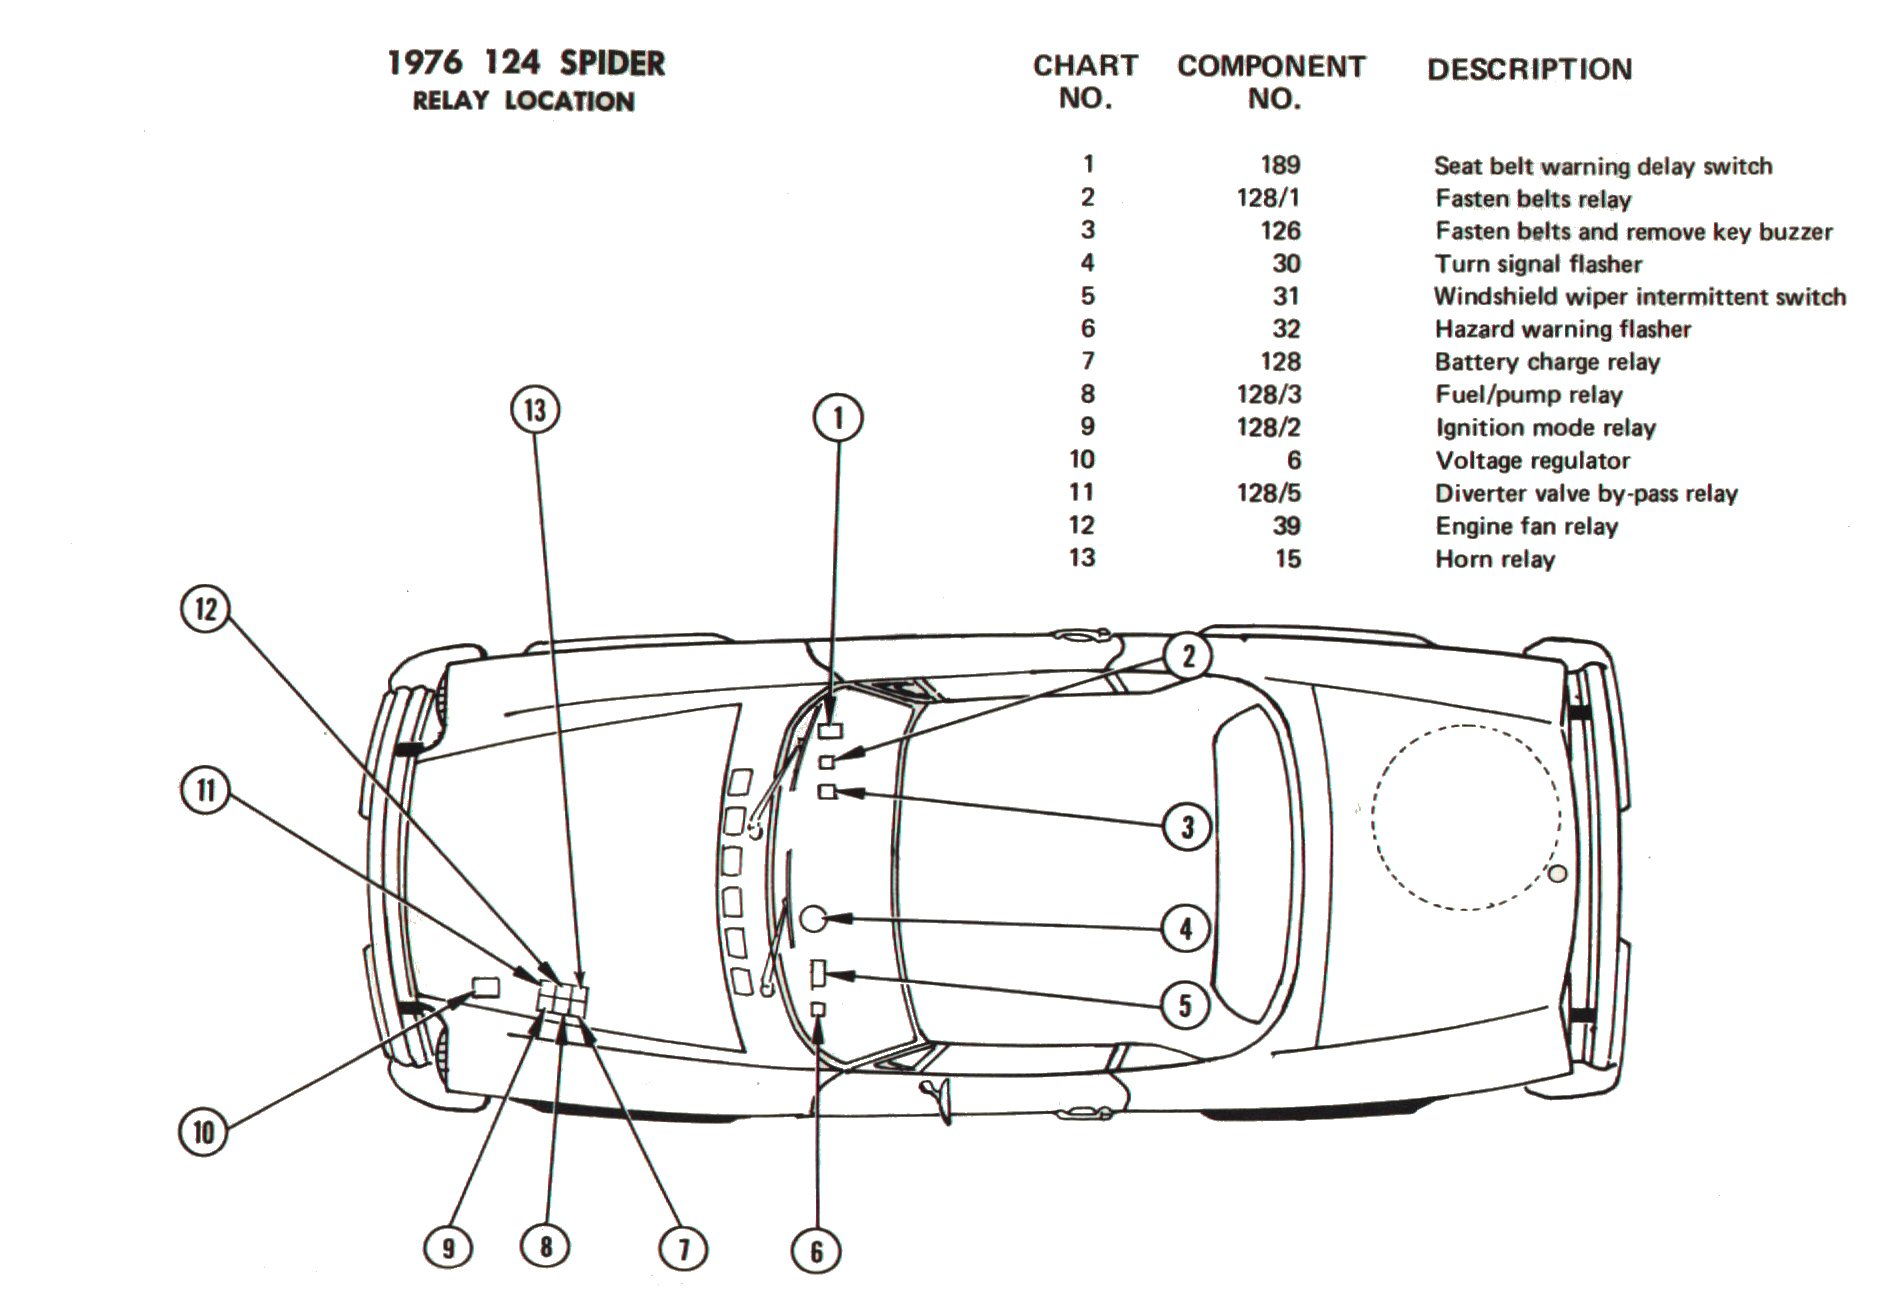 1979 Fiat Spider Wiring | Wiring Diagram  Fiat Spider Ignition Wiring Diagrams on fiat 124 wiring diagram, 1979 fiat spider fuses diagram, 1980 fiat spider ignition diagram,